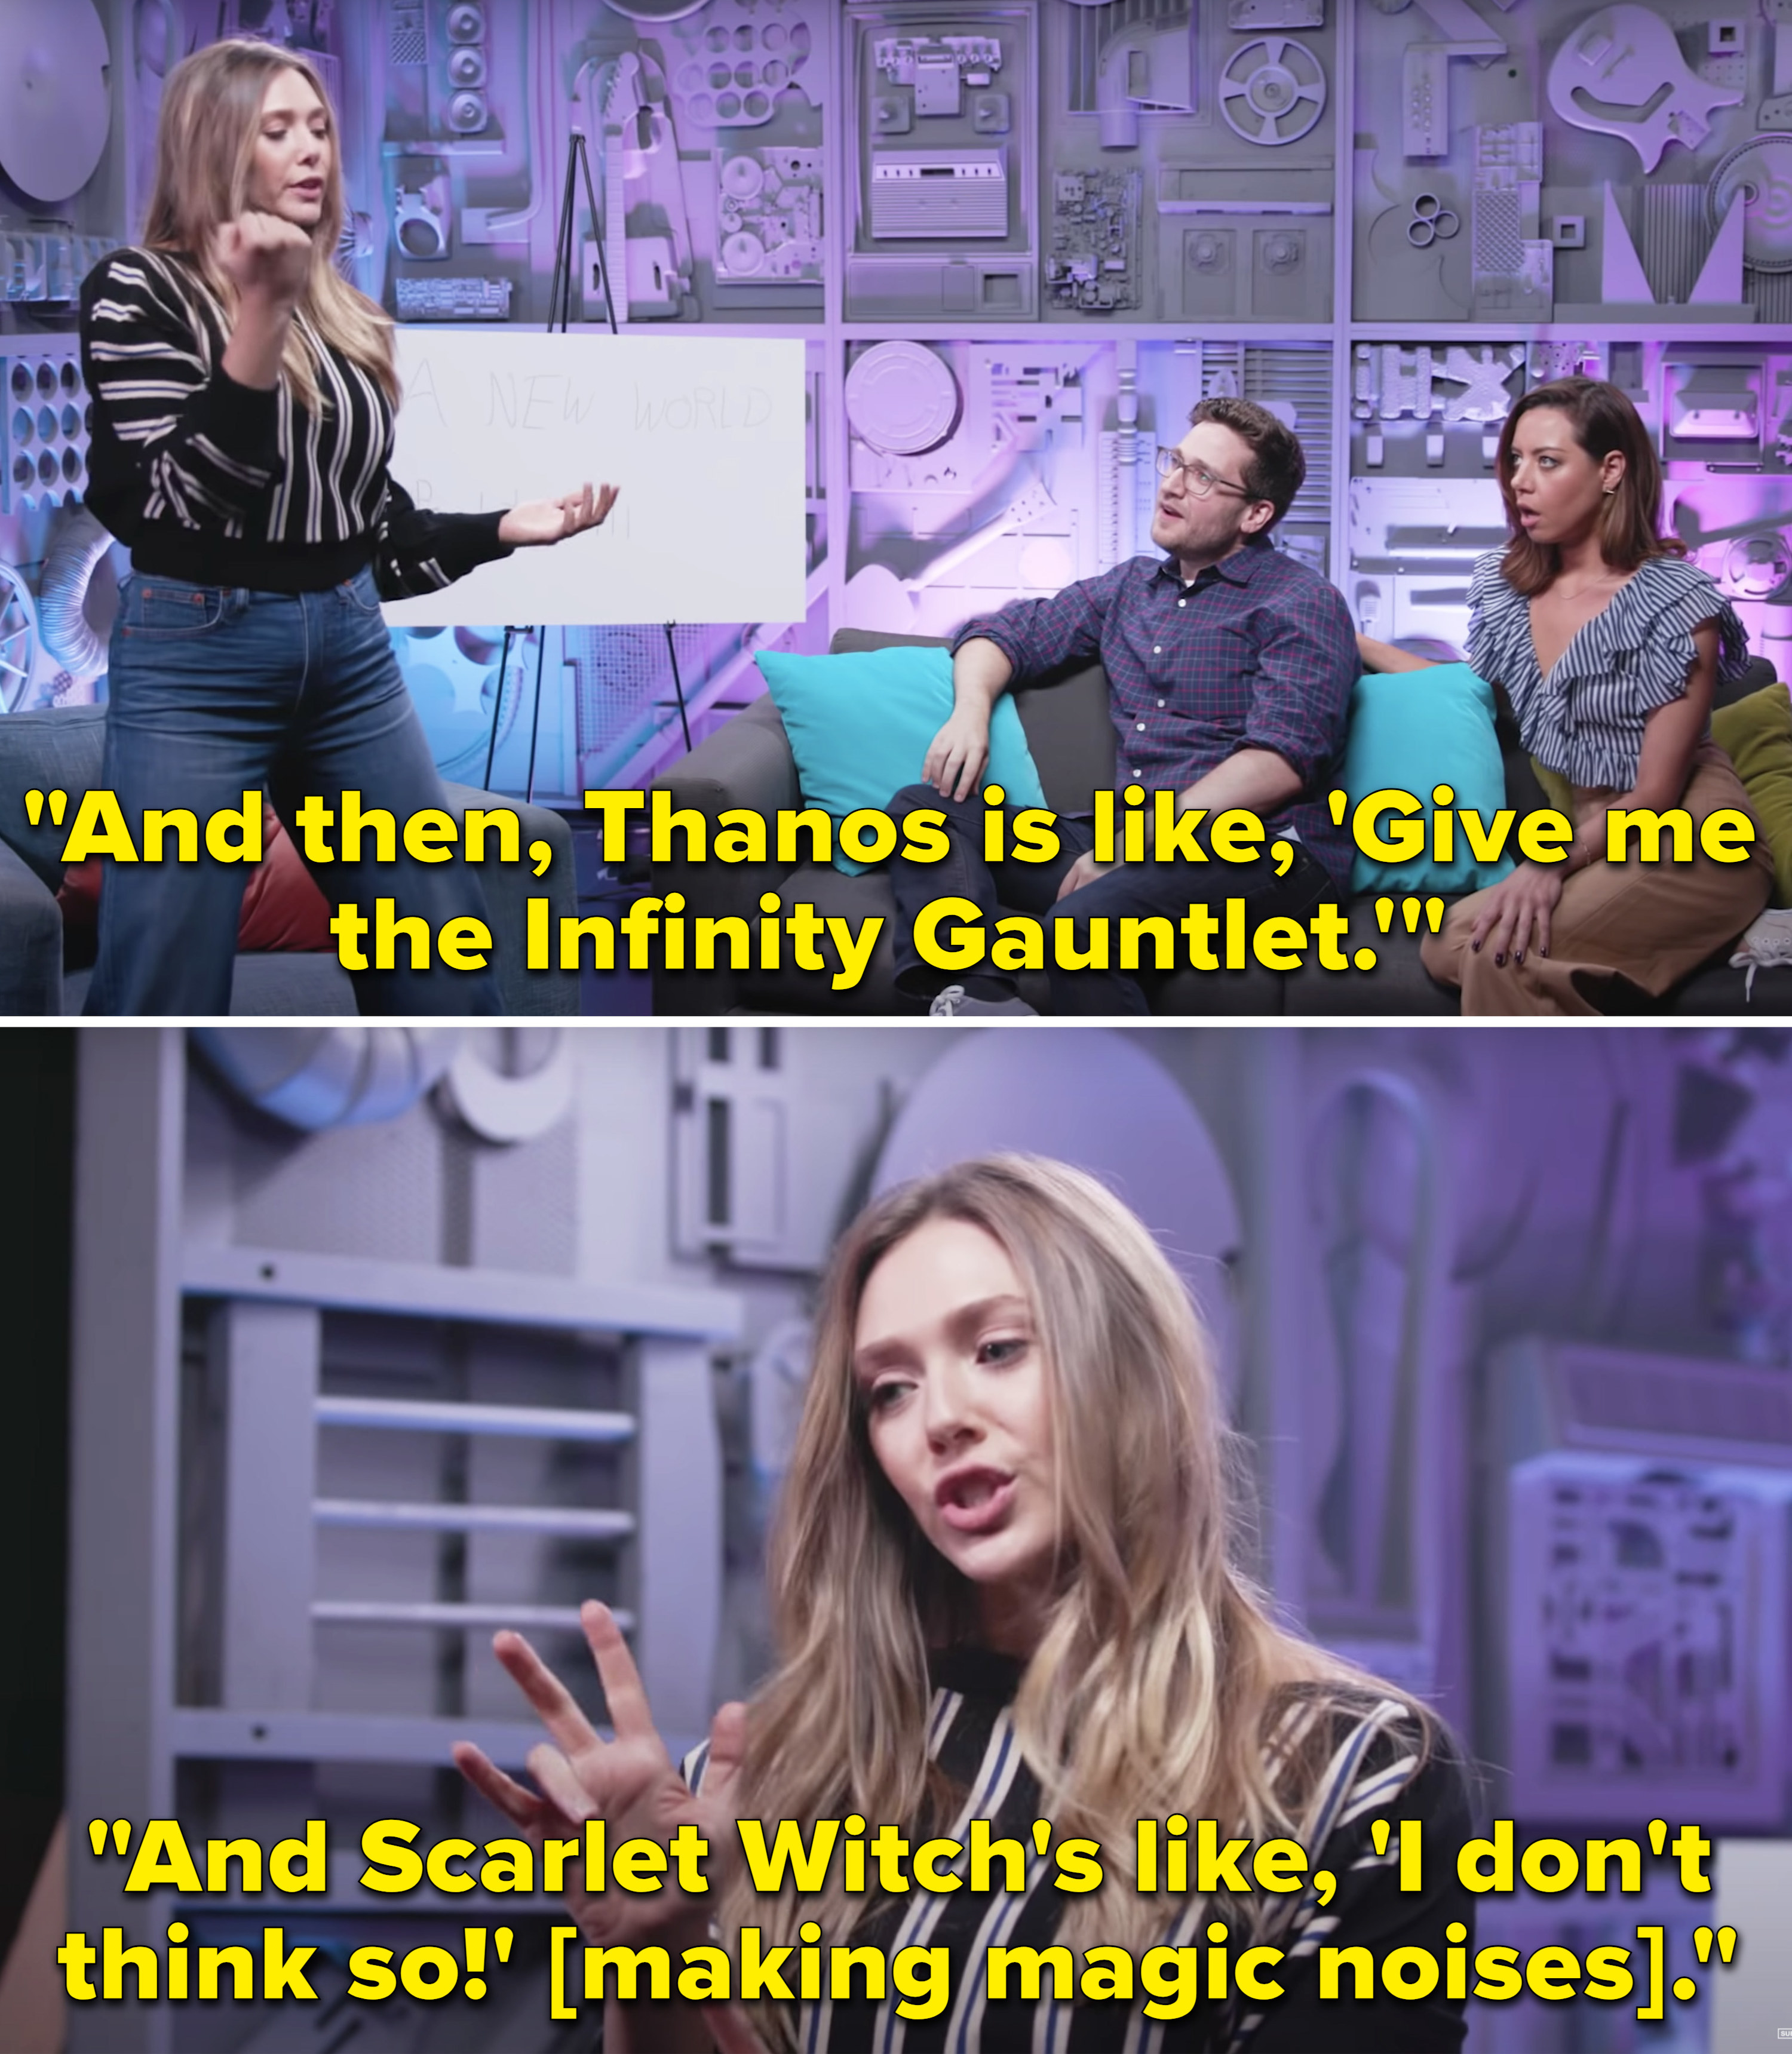 """Elizabeth saying, """"And then, Thanos is like, 'Give me the Infinity Gauntlet. And Scarlet Witch's like, 'I don't think so'"""""""